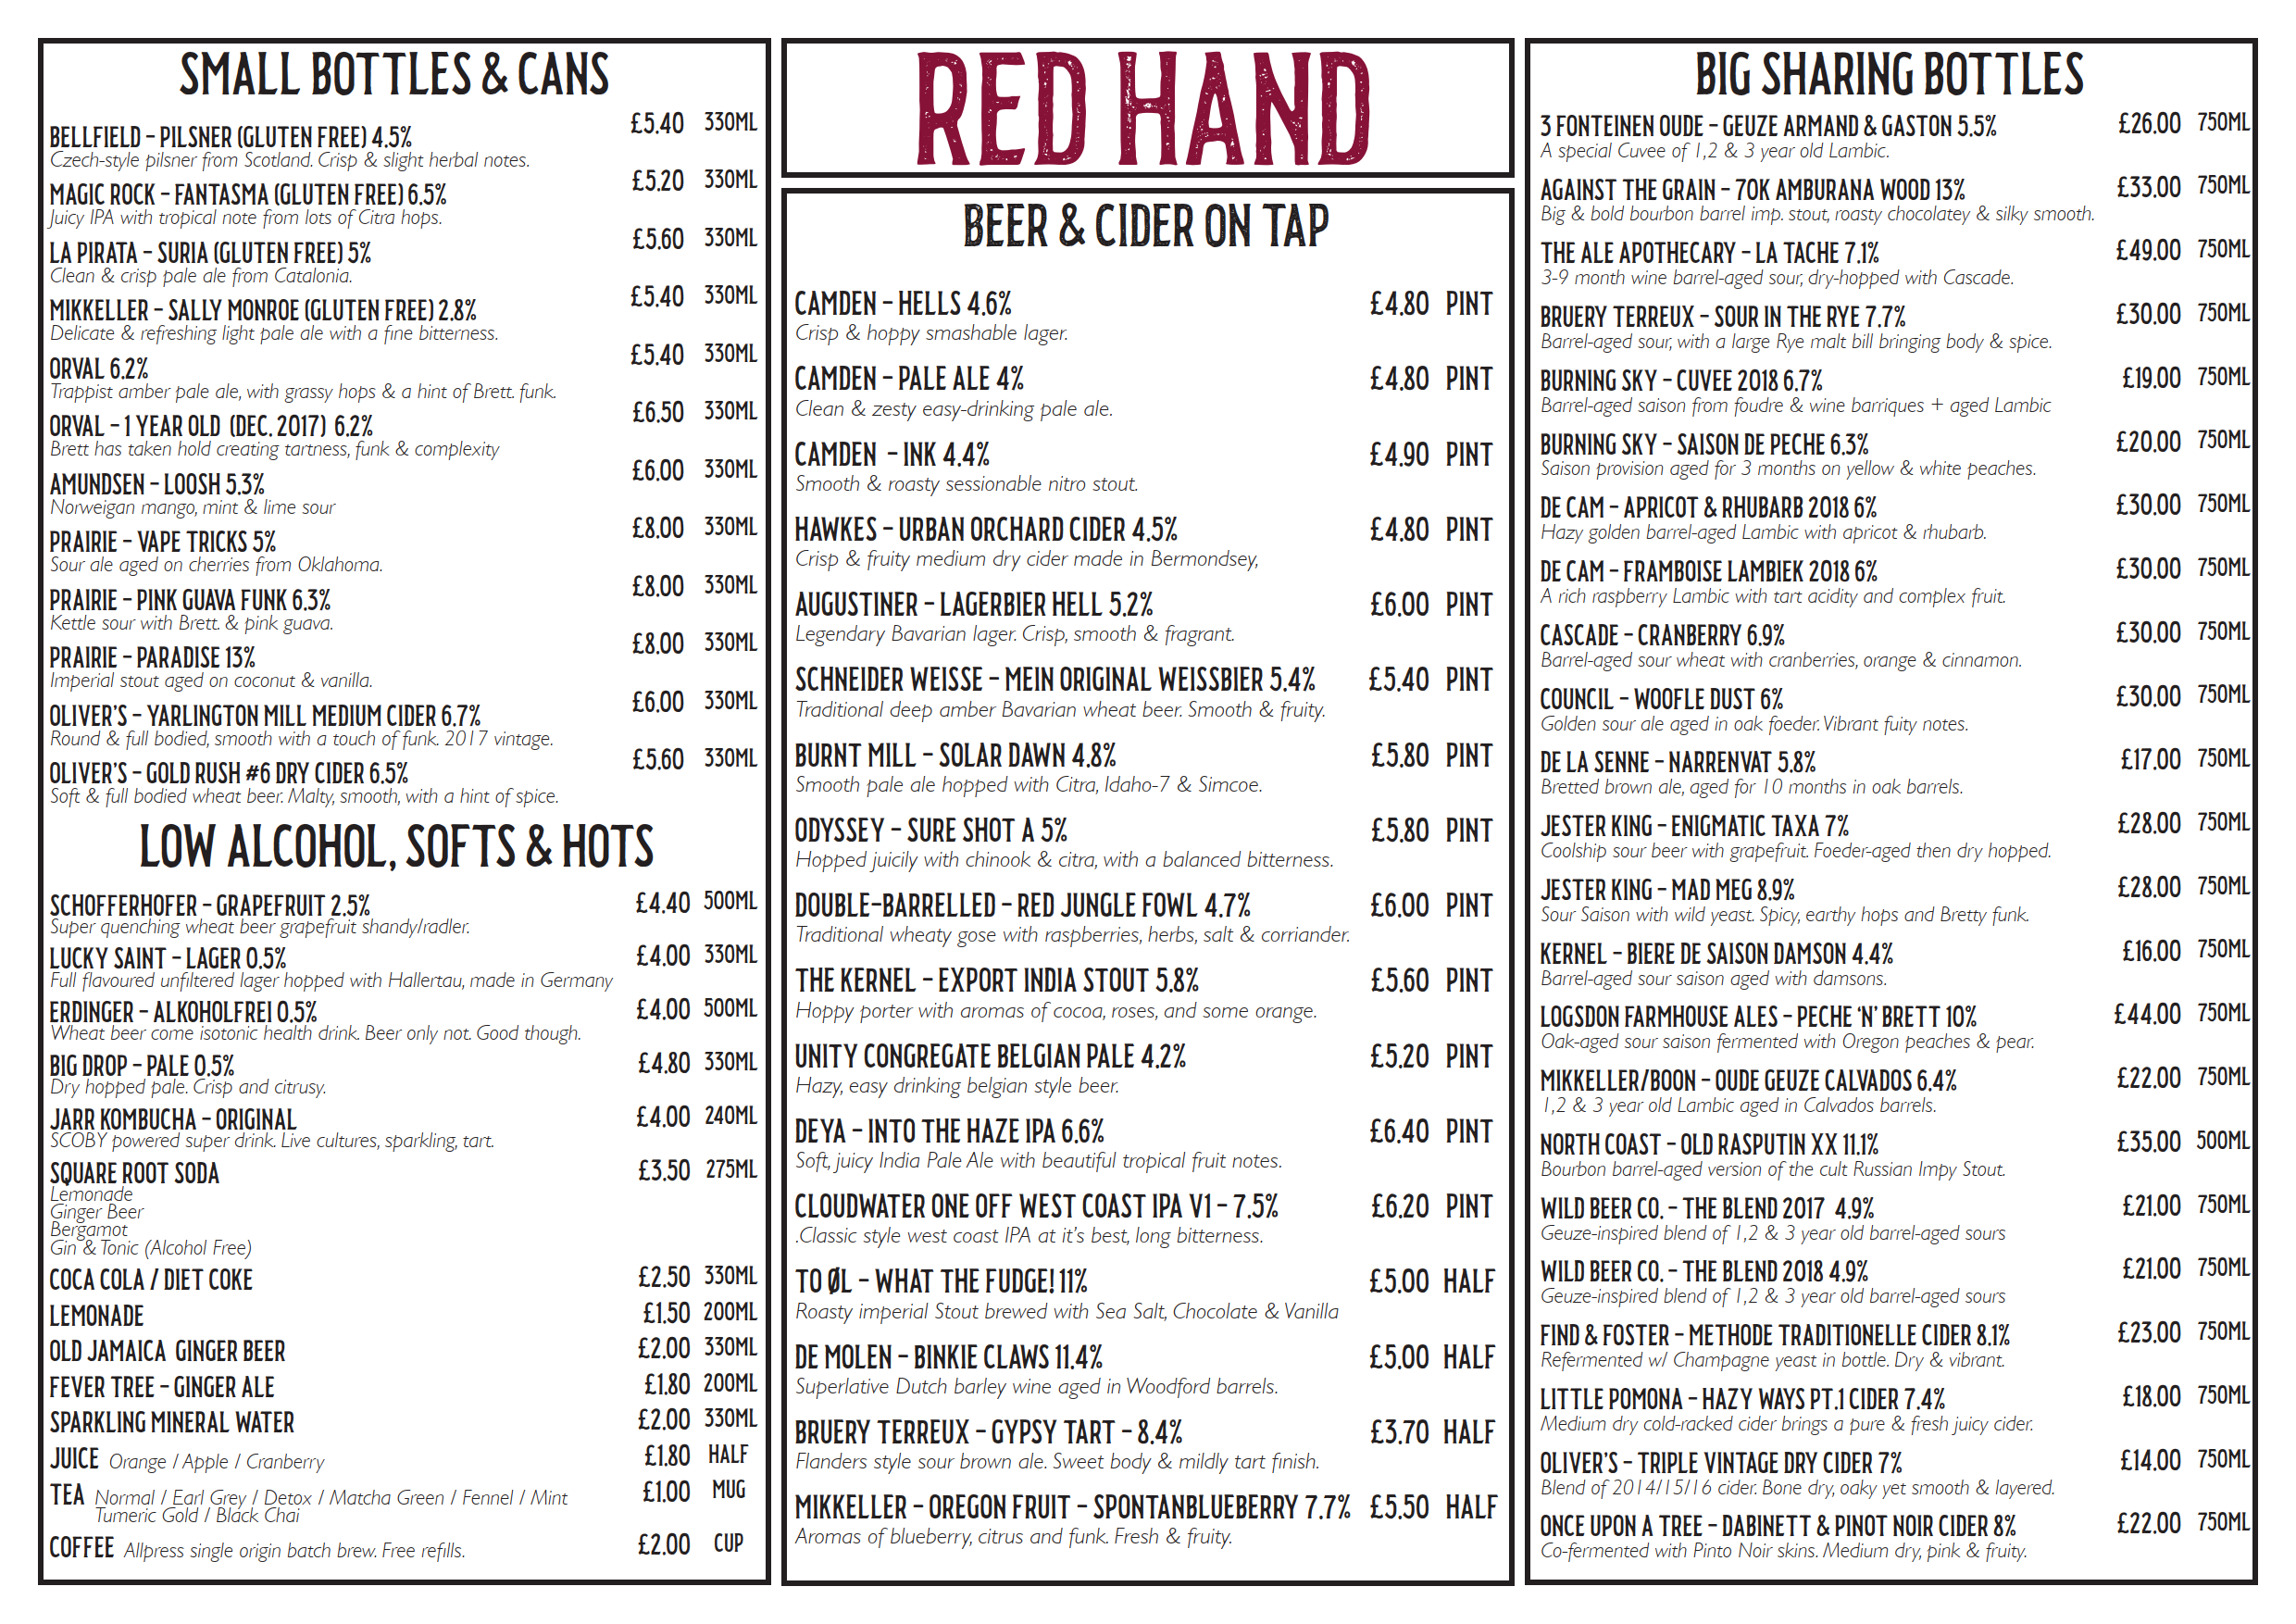 RED HAND DRINKS MENU 110219_1.png